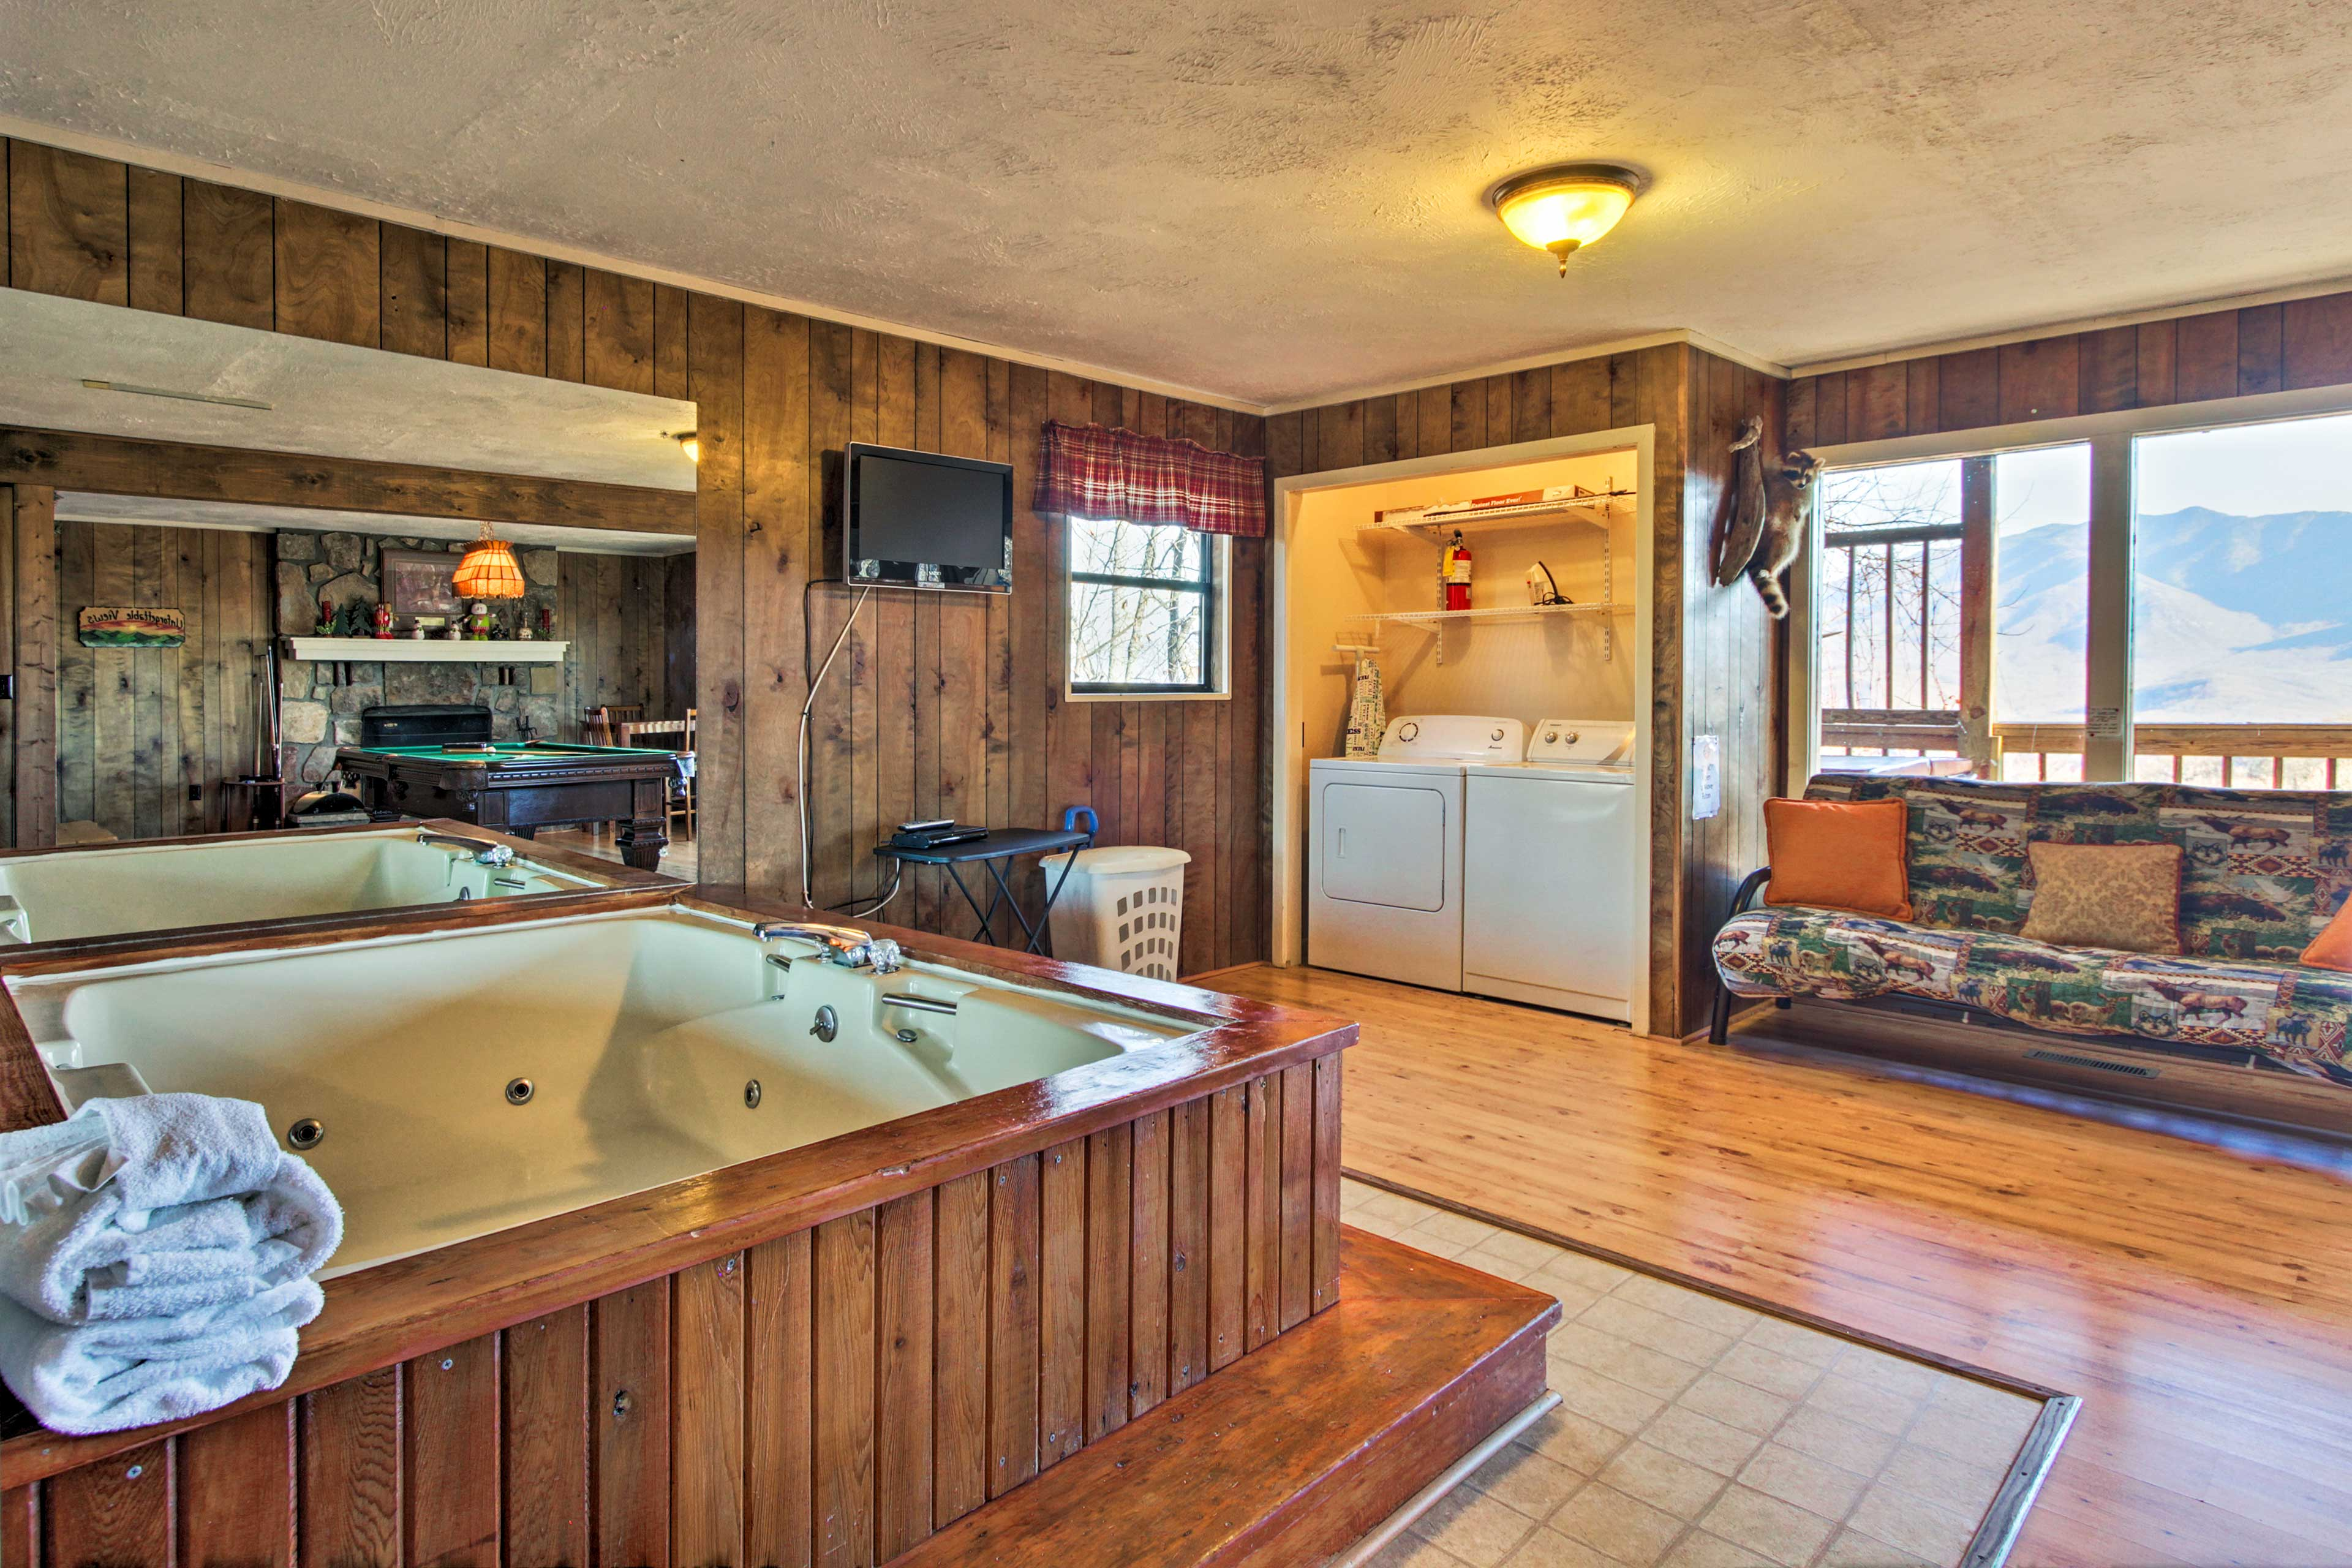 There's a flat-screen cable TV and a large Jacuzzi tub in the room.